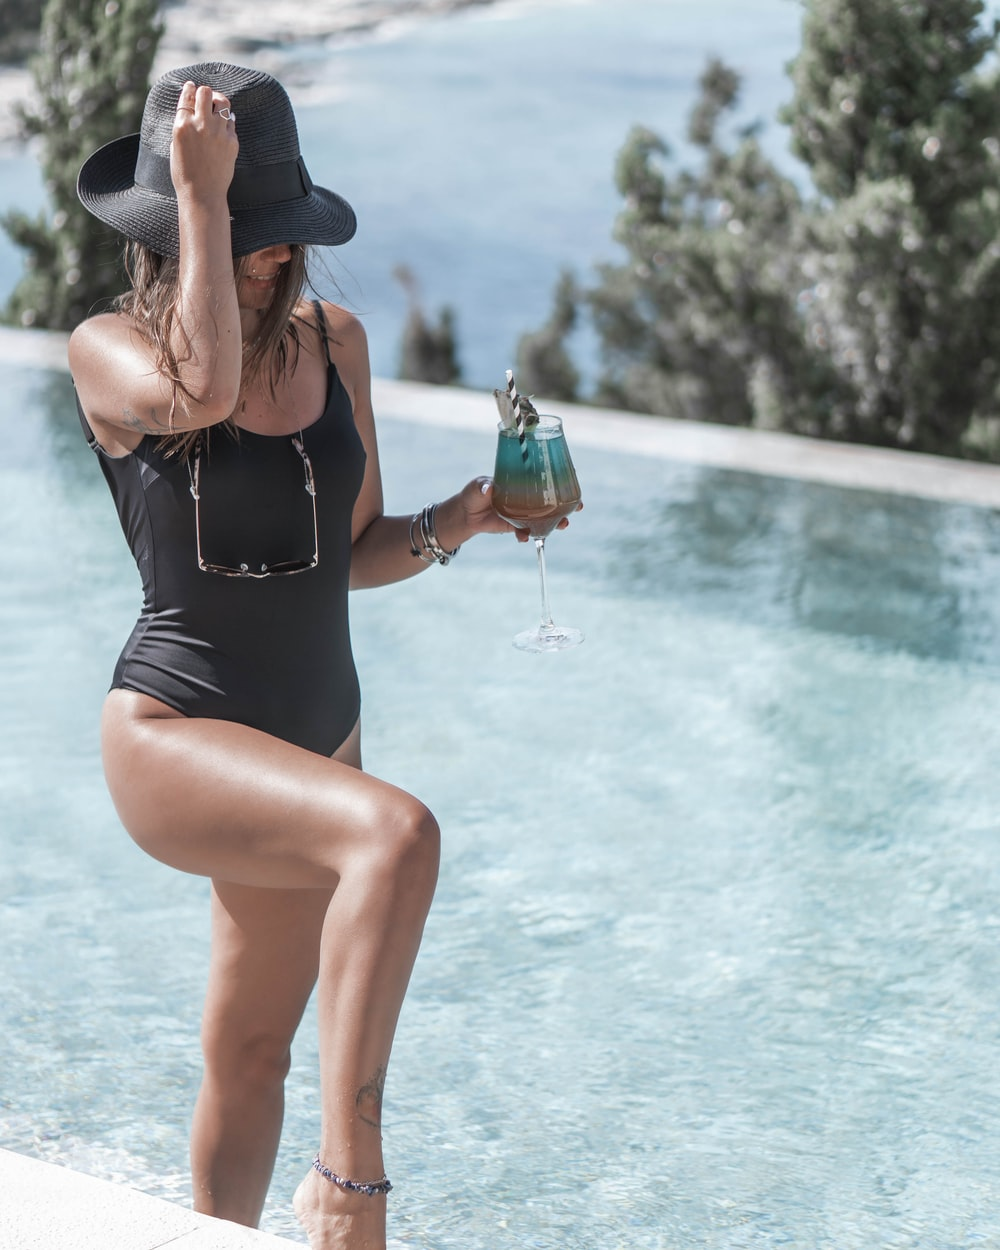 woman in black one piece swimsuit holding blue and green plastic cup